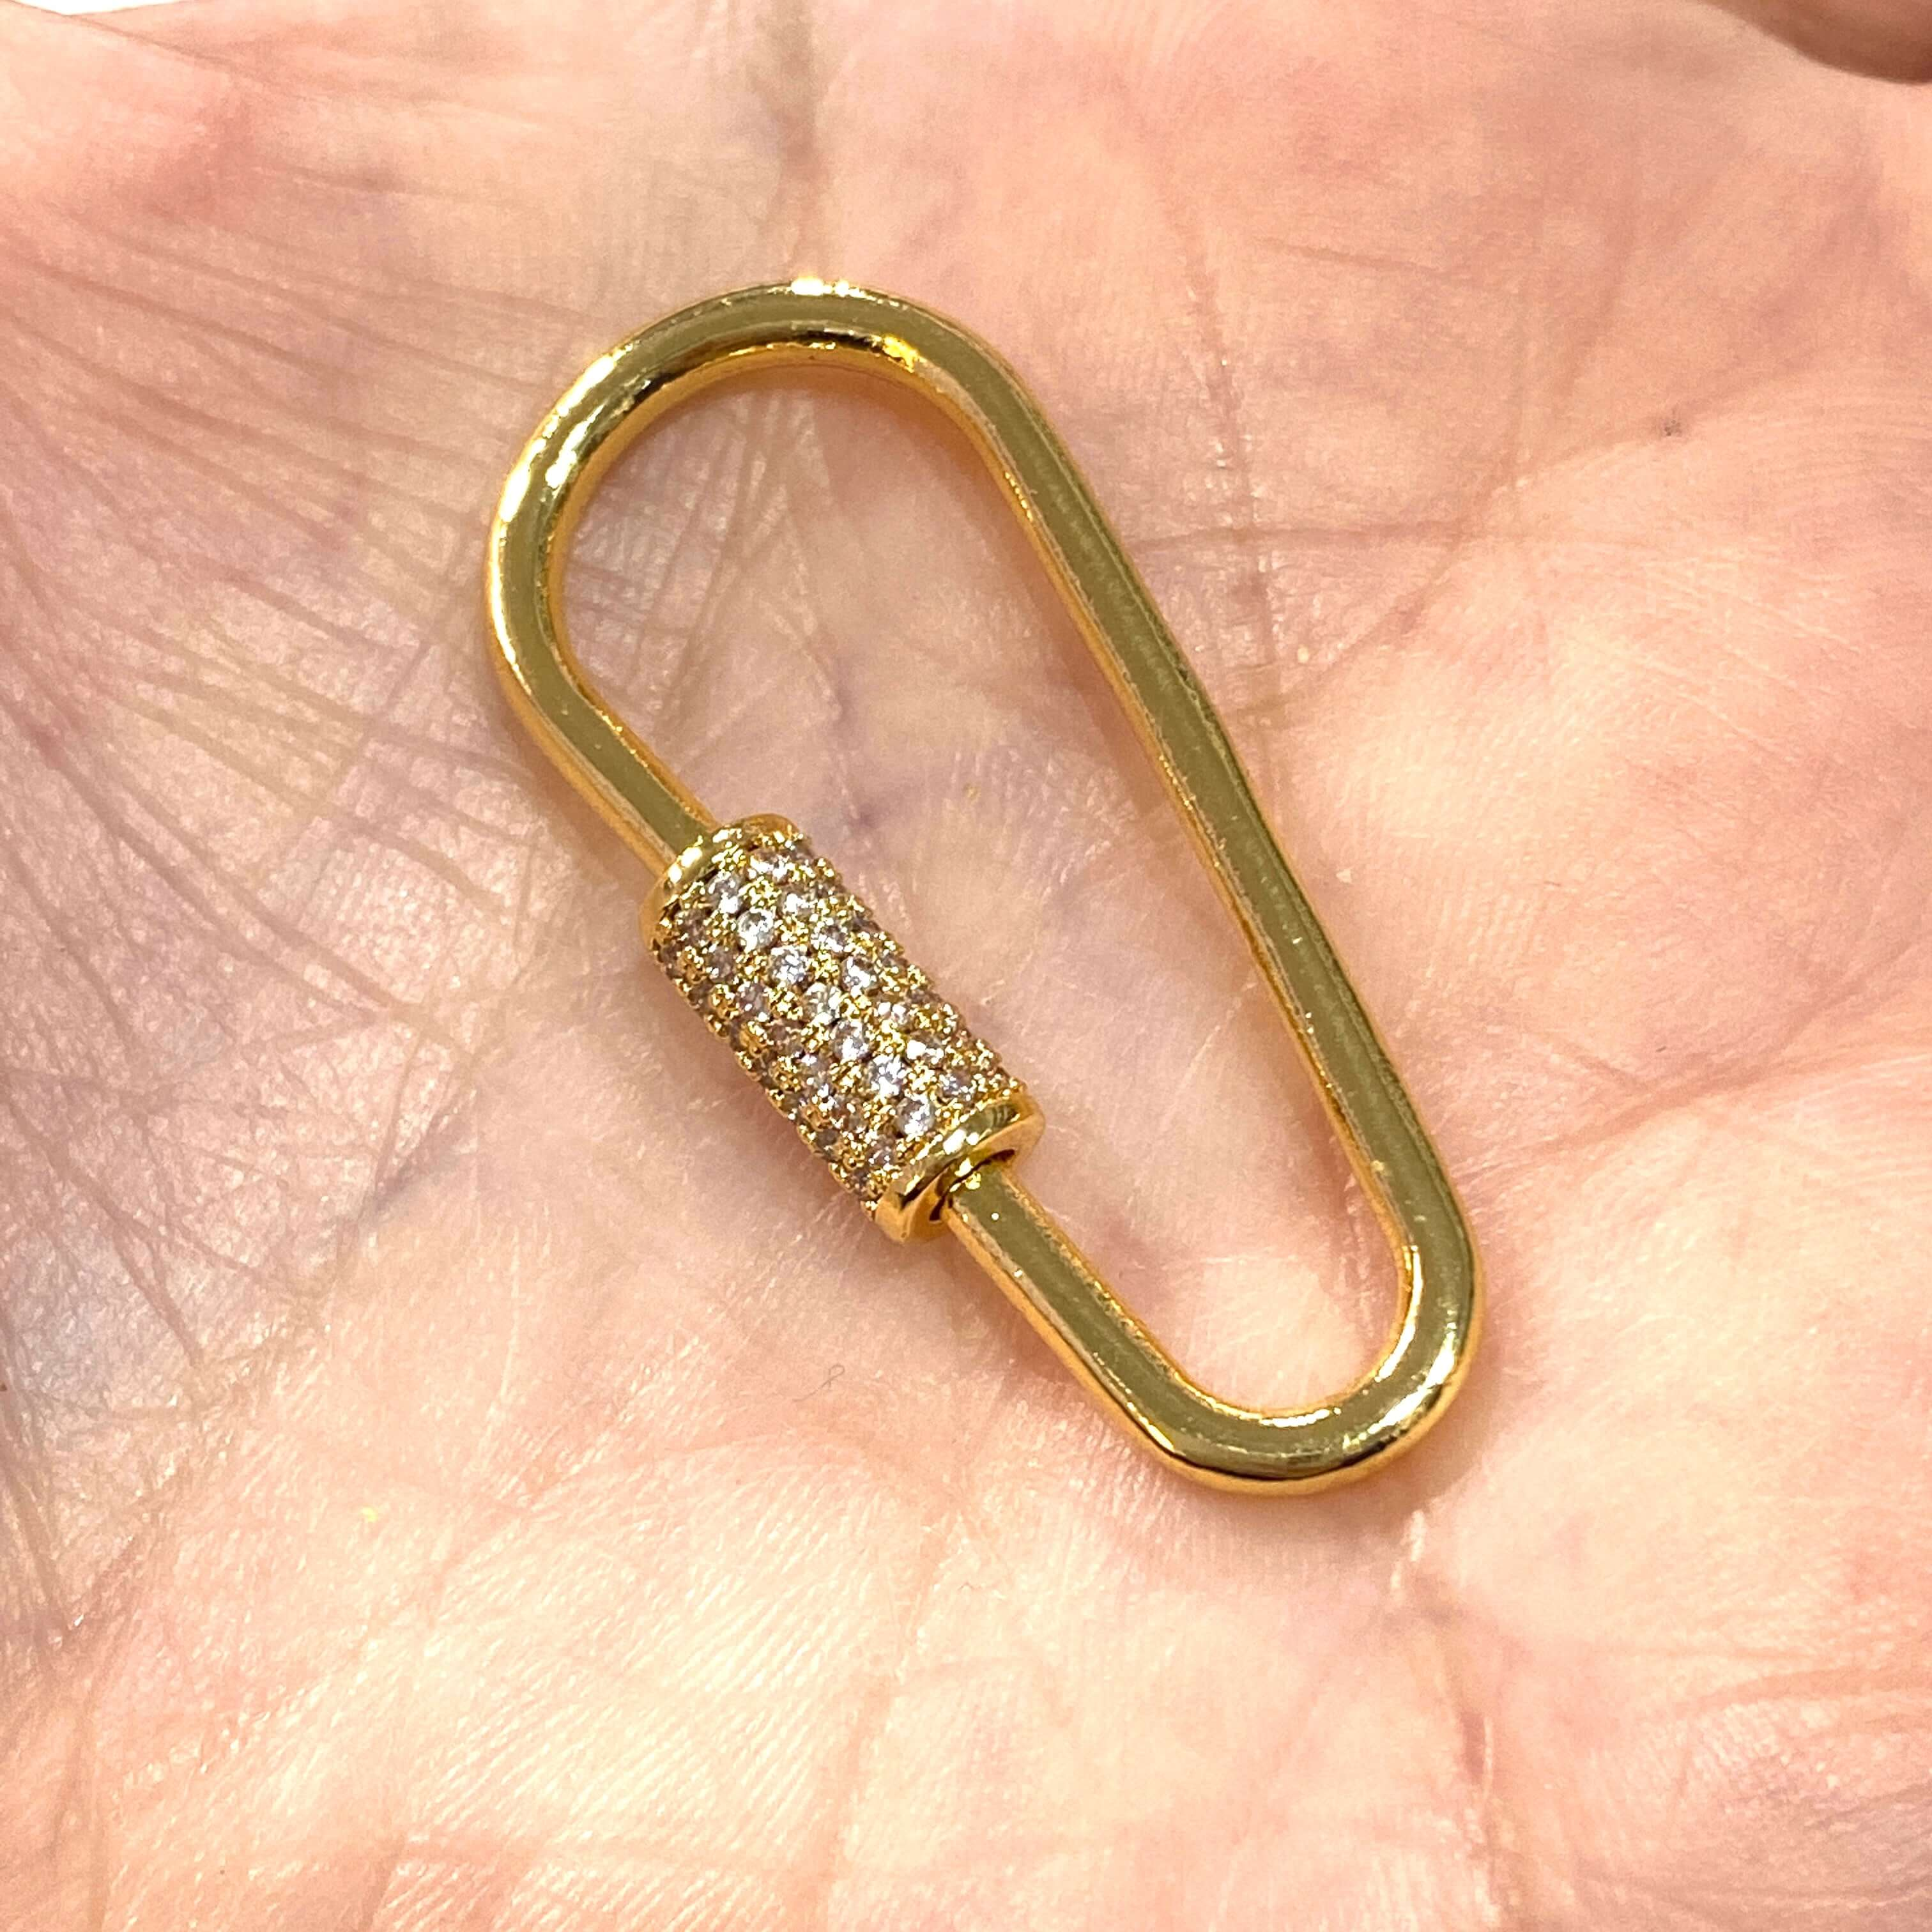 24Kt Gold Oval Screw Clasp 37x16mm 24Kt Gold Plated Carabiner Clasp Micro Pave Gold Screw Clasp